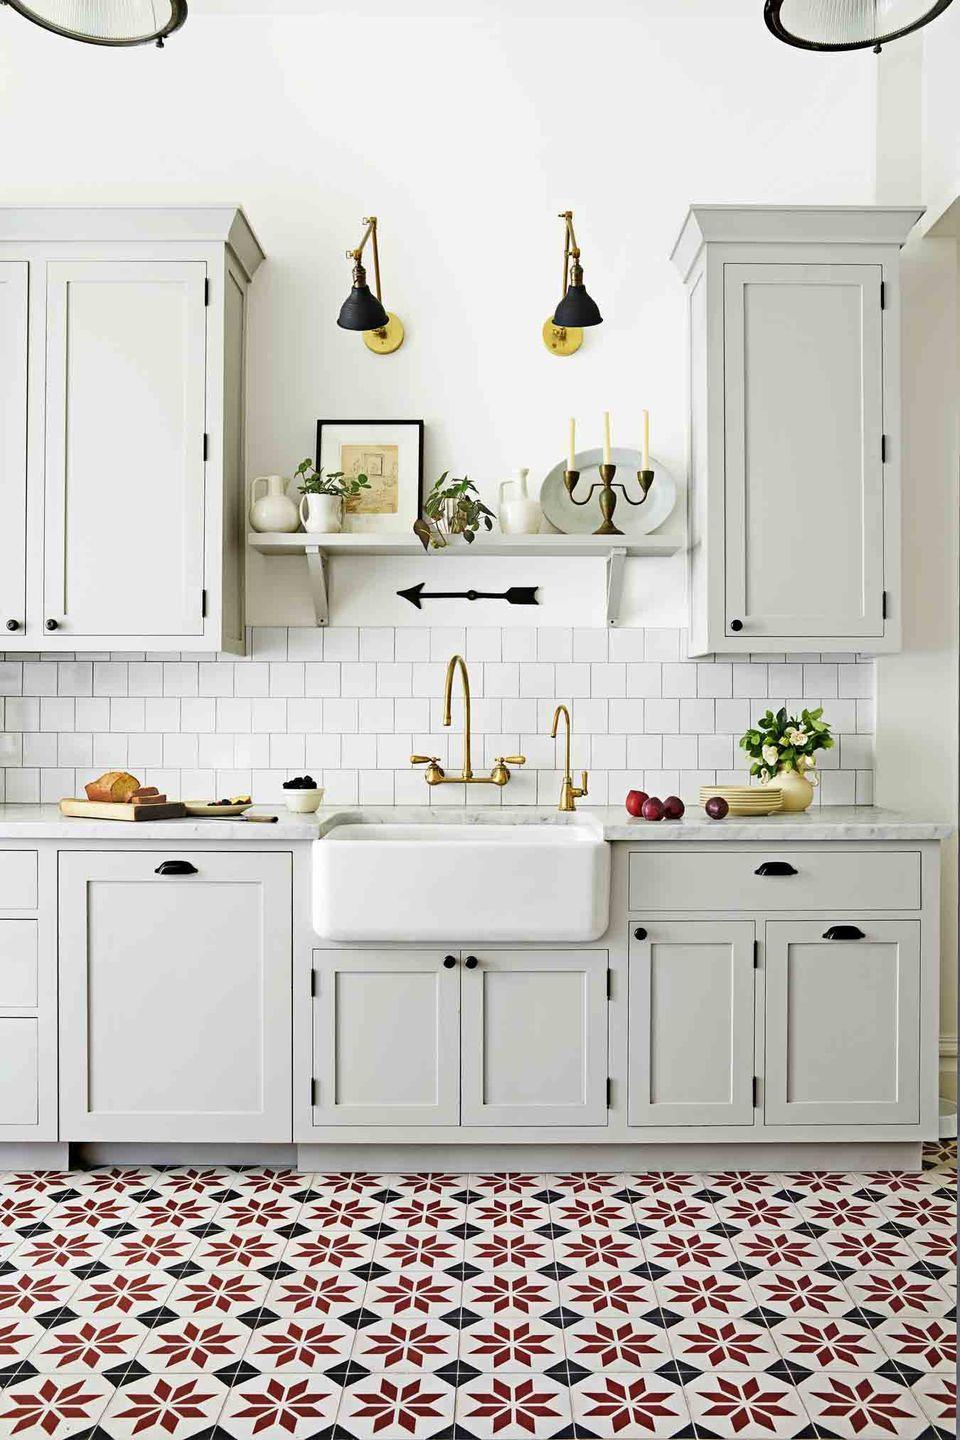 """<p>Rugs, however durable, aren't always practical for a heavy-use kitchen. Enter statement floor tile. A little goes a long way, which means this can be a good place to splurge. Go to <em><a href=""""https://www.granadatile.com/"""" rel=""""nofollow noopener"""" target=""""_blank"""" data-ylk=""""slk:granadatile.com"""" class=""""link rapid-noclick-resp"""">granadatile.com</a></em> for similar quilt-like patterns. </p>"""